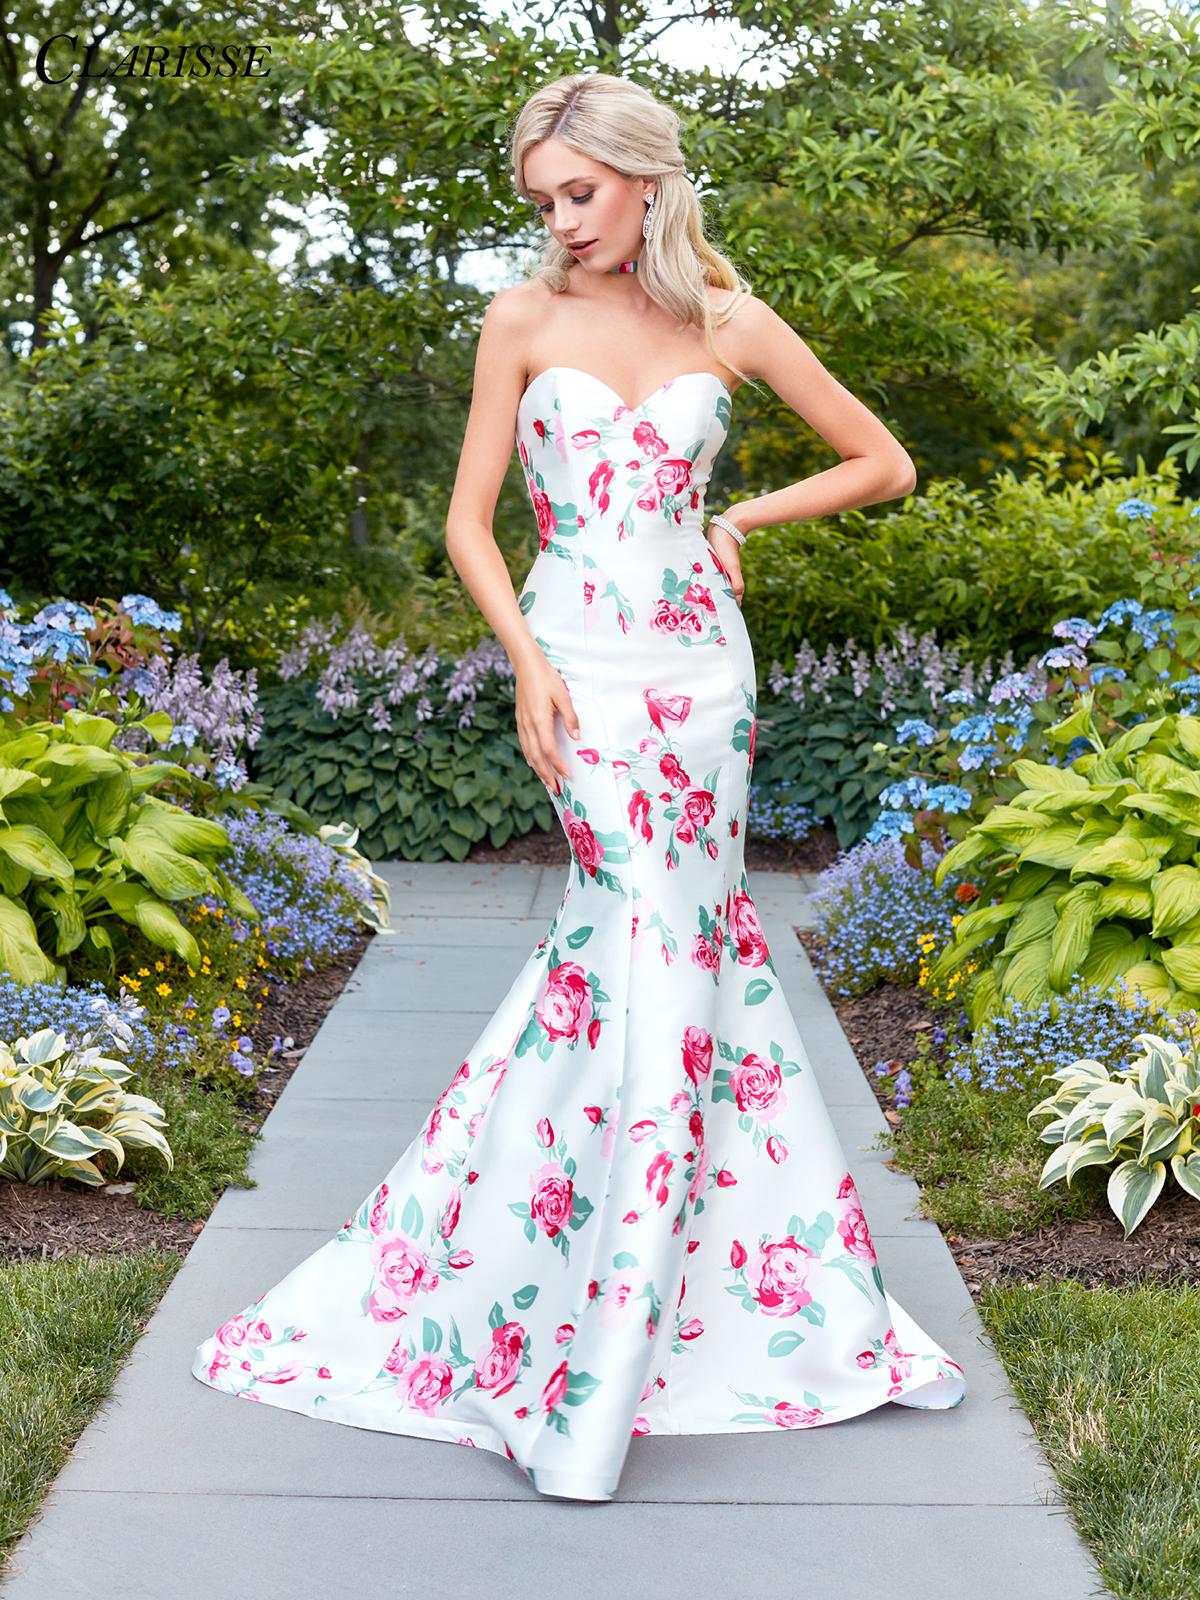 2018 Prom Dress Clarisse 3424 | Promgirl.net